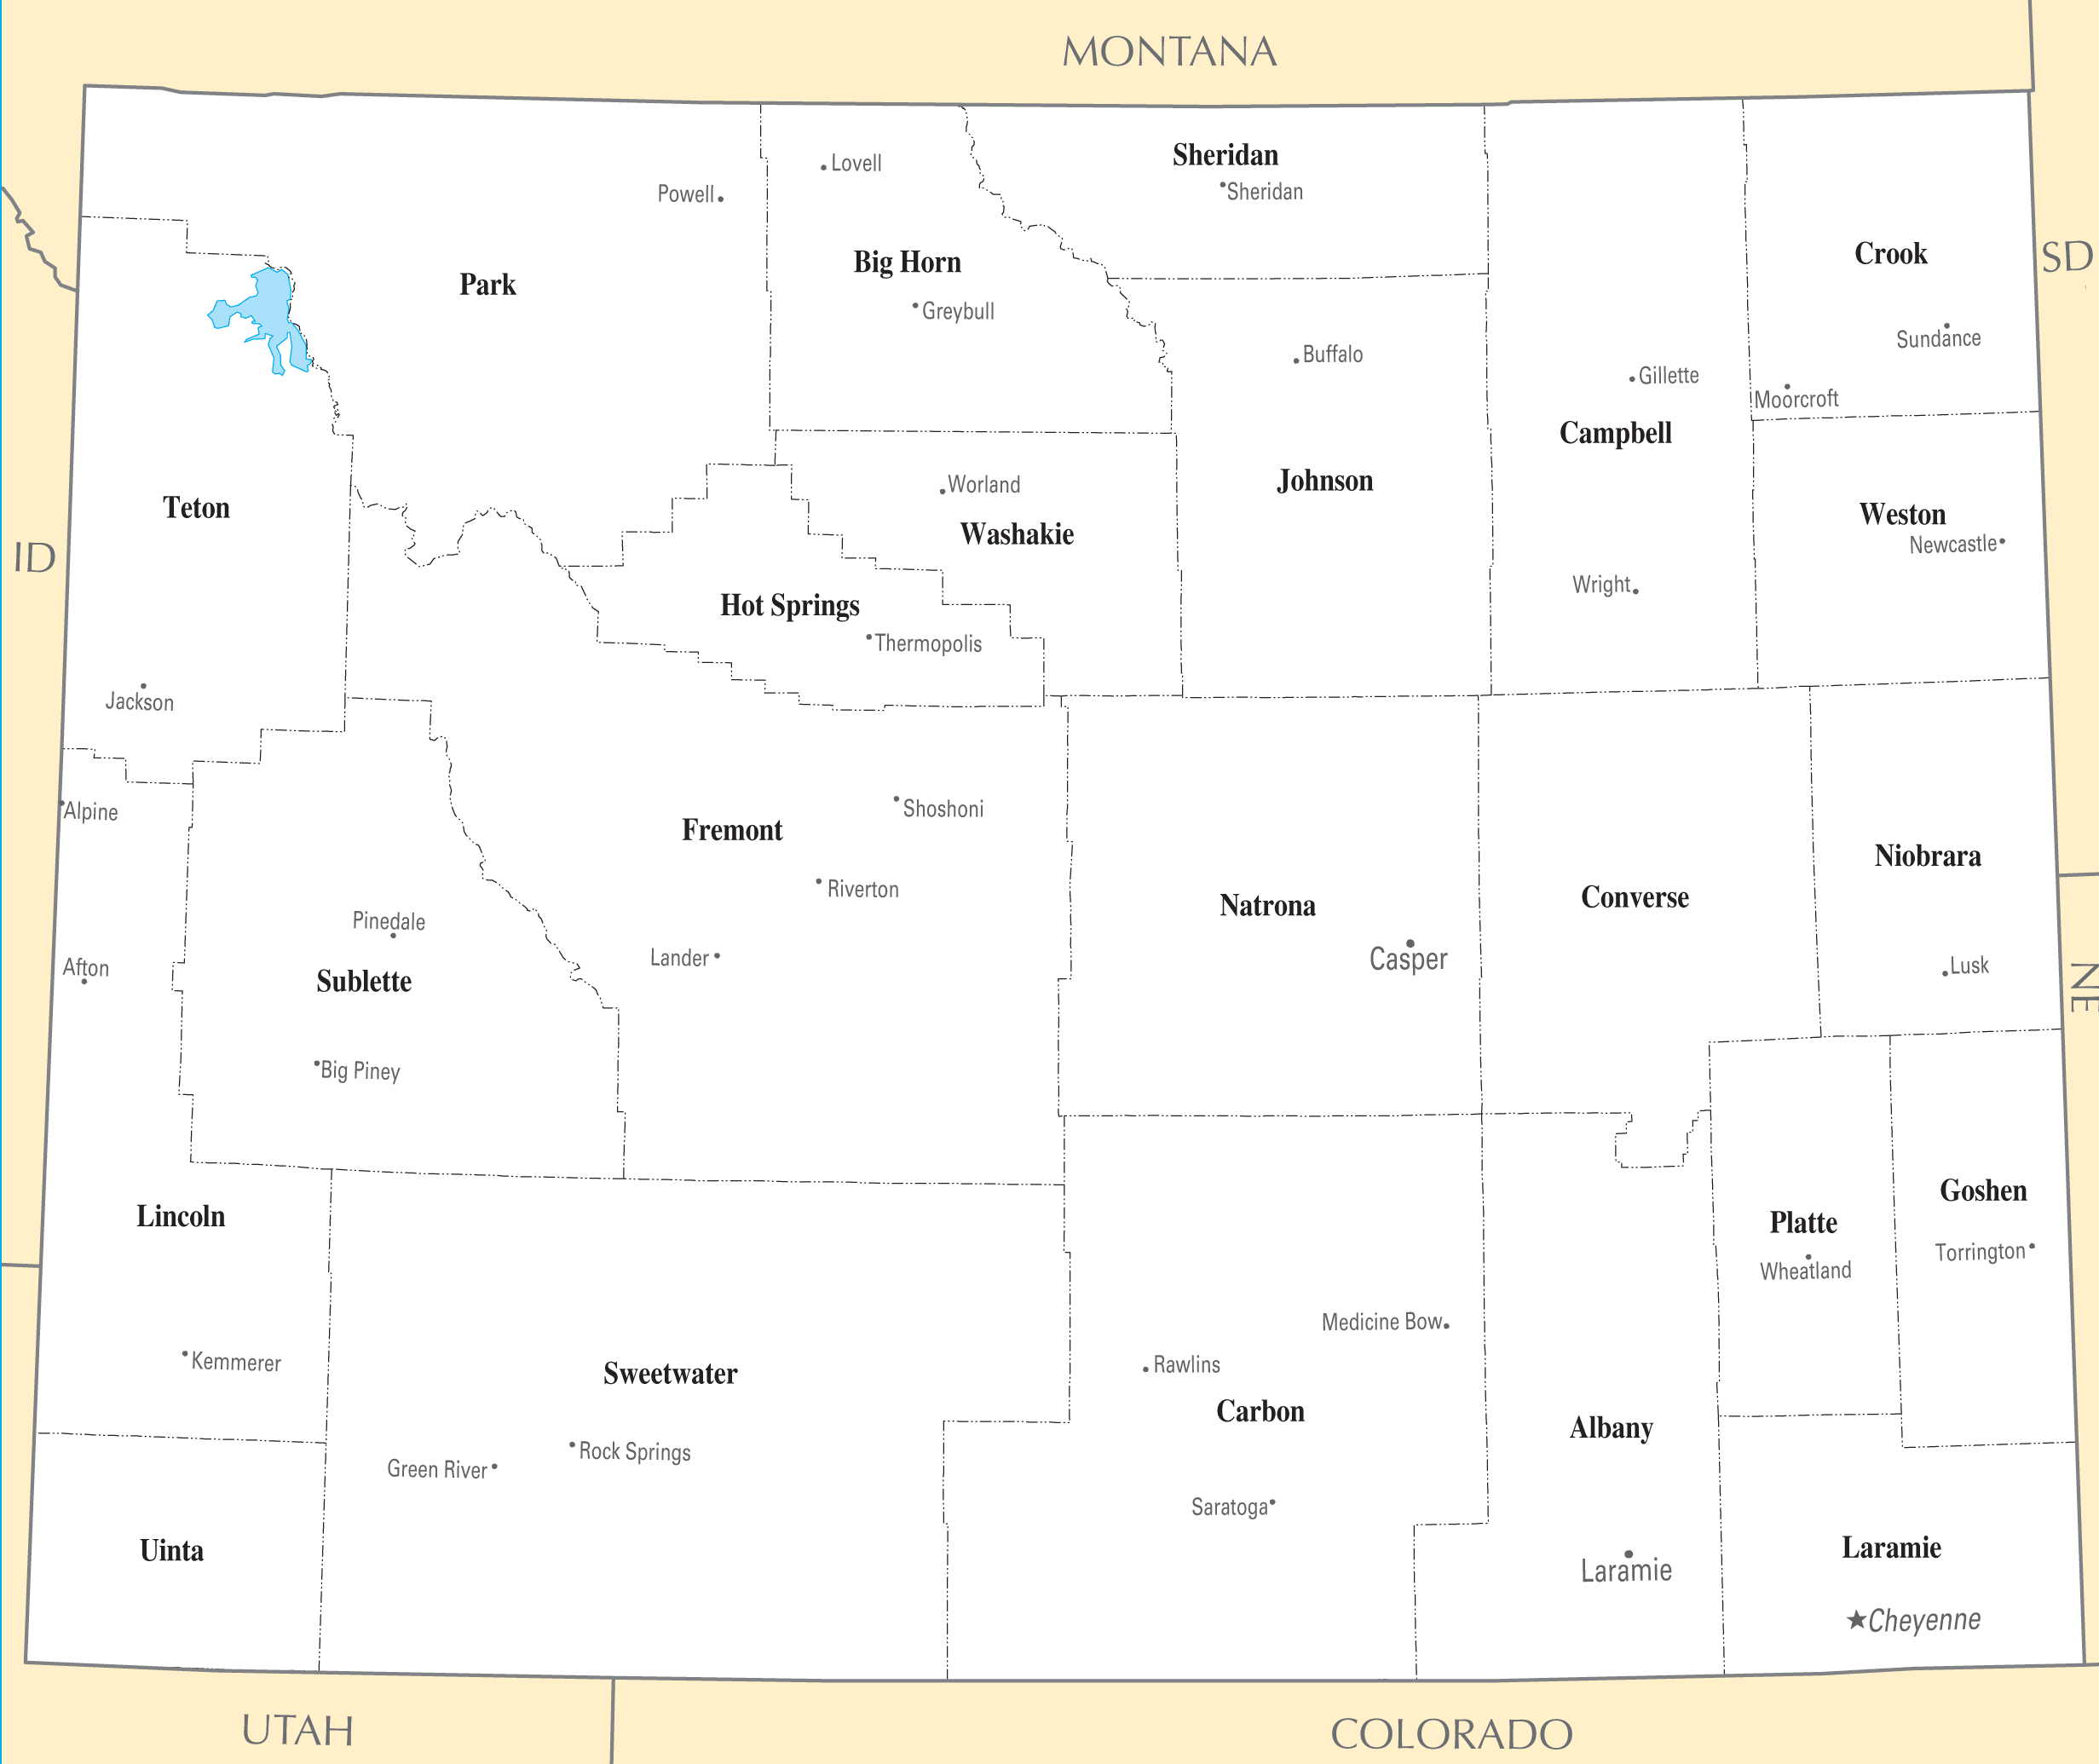 Wyoming Cities And Towns • Mapsof.net